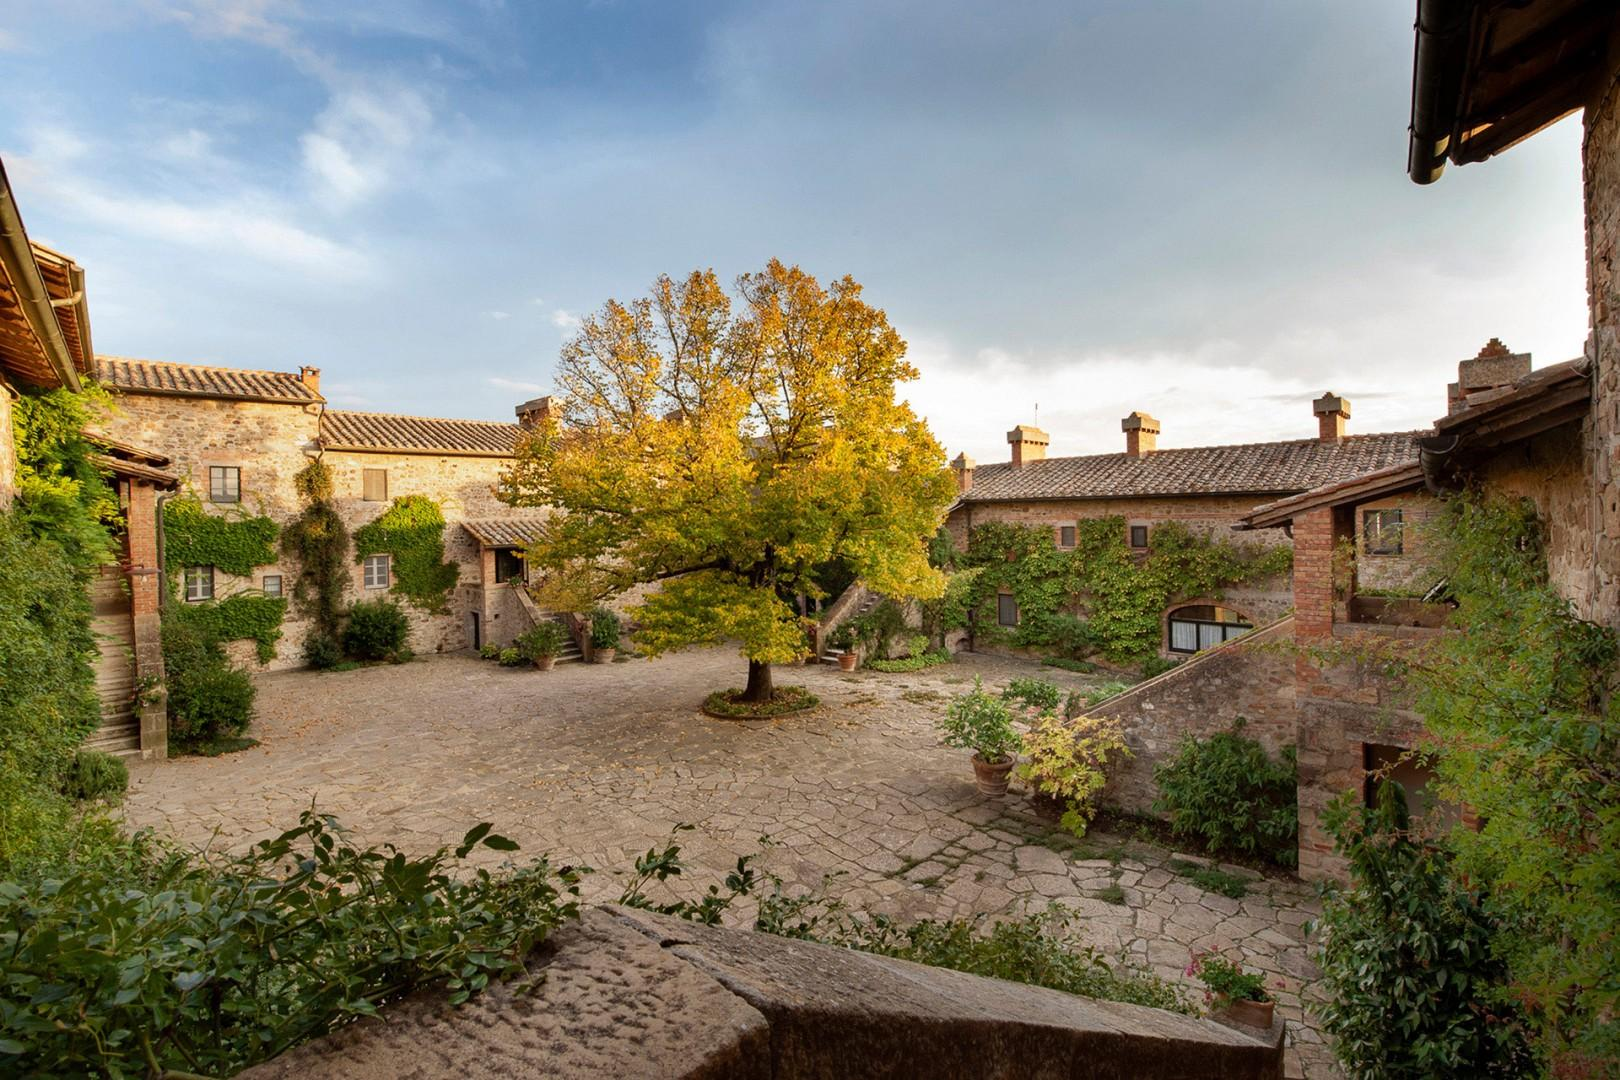 The courtyard of the Borgo estate welcomes you!